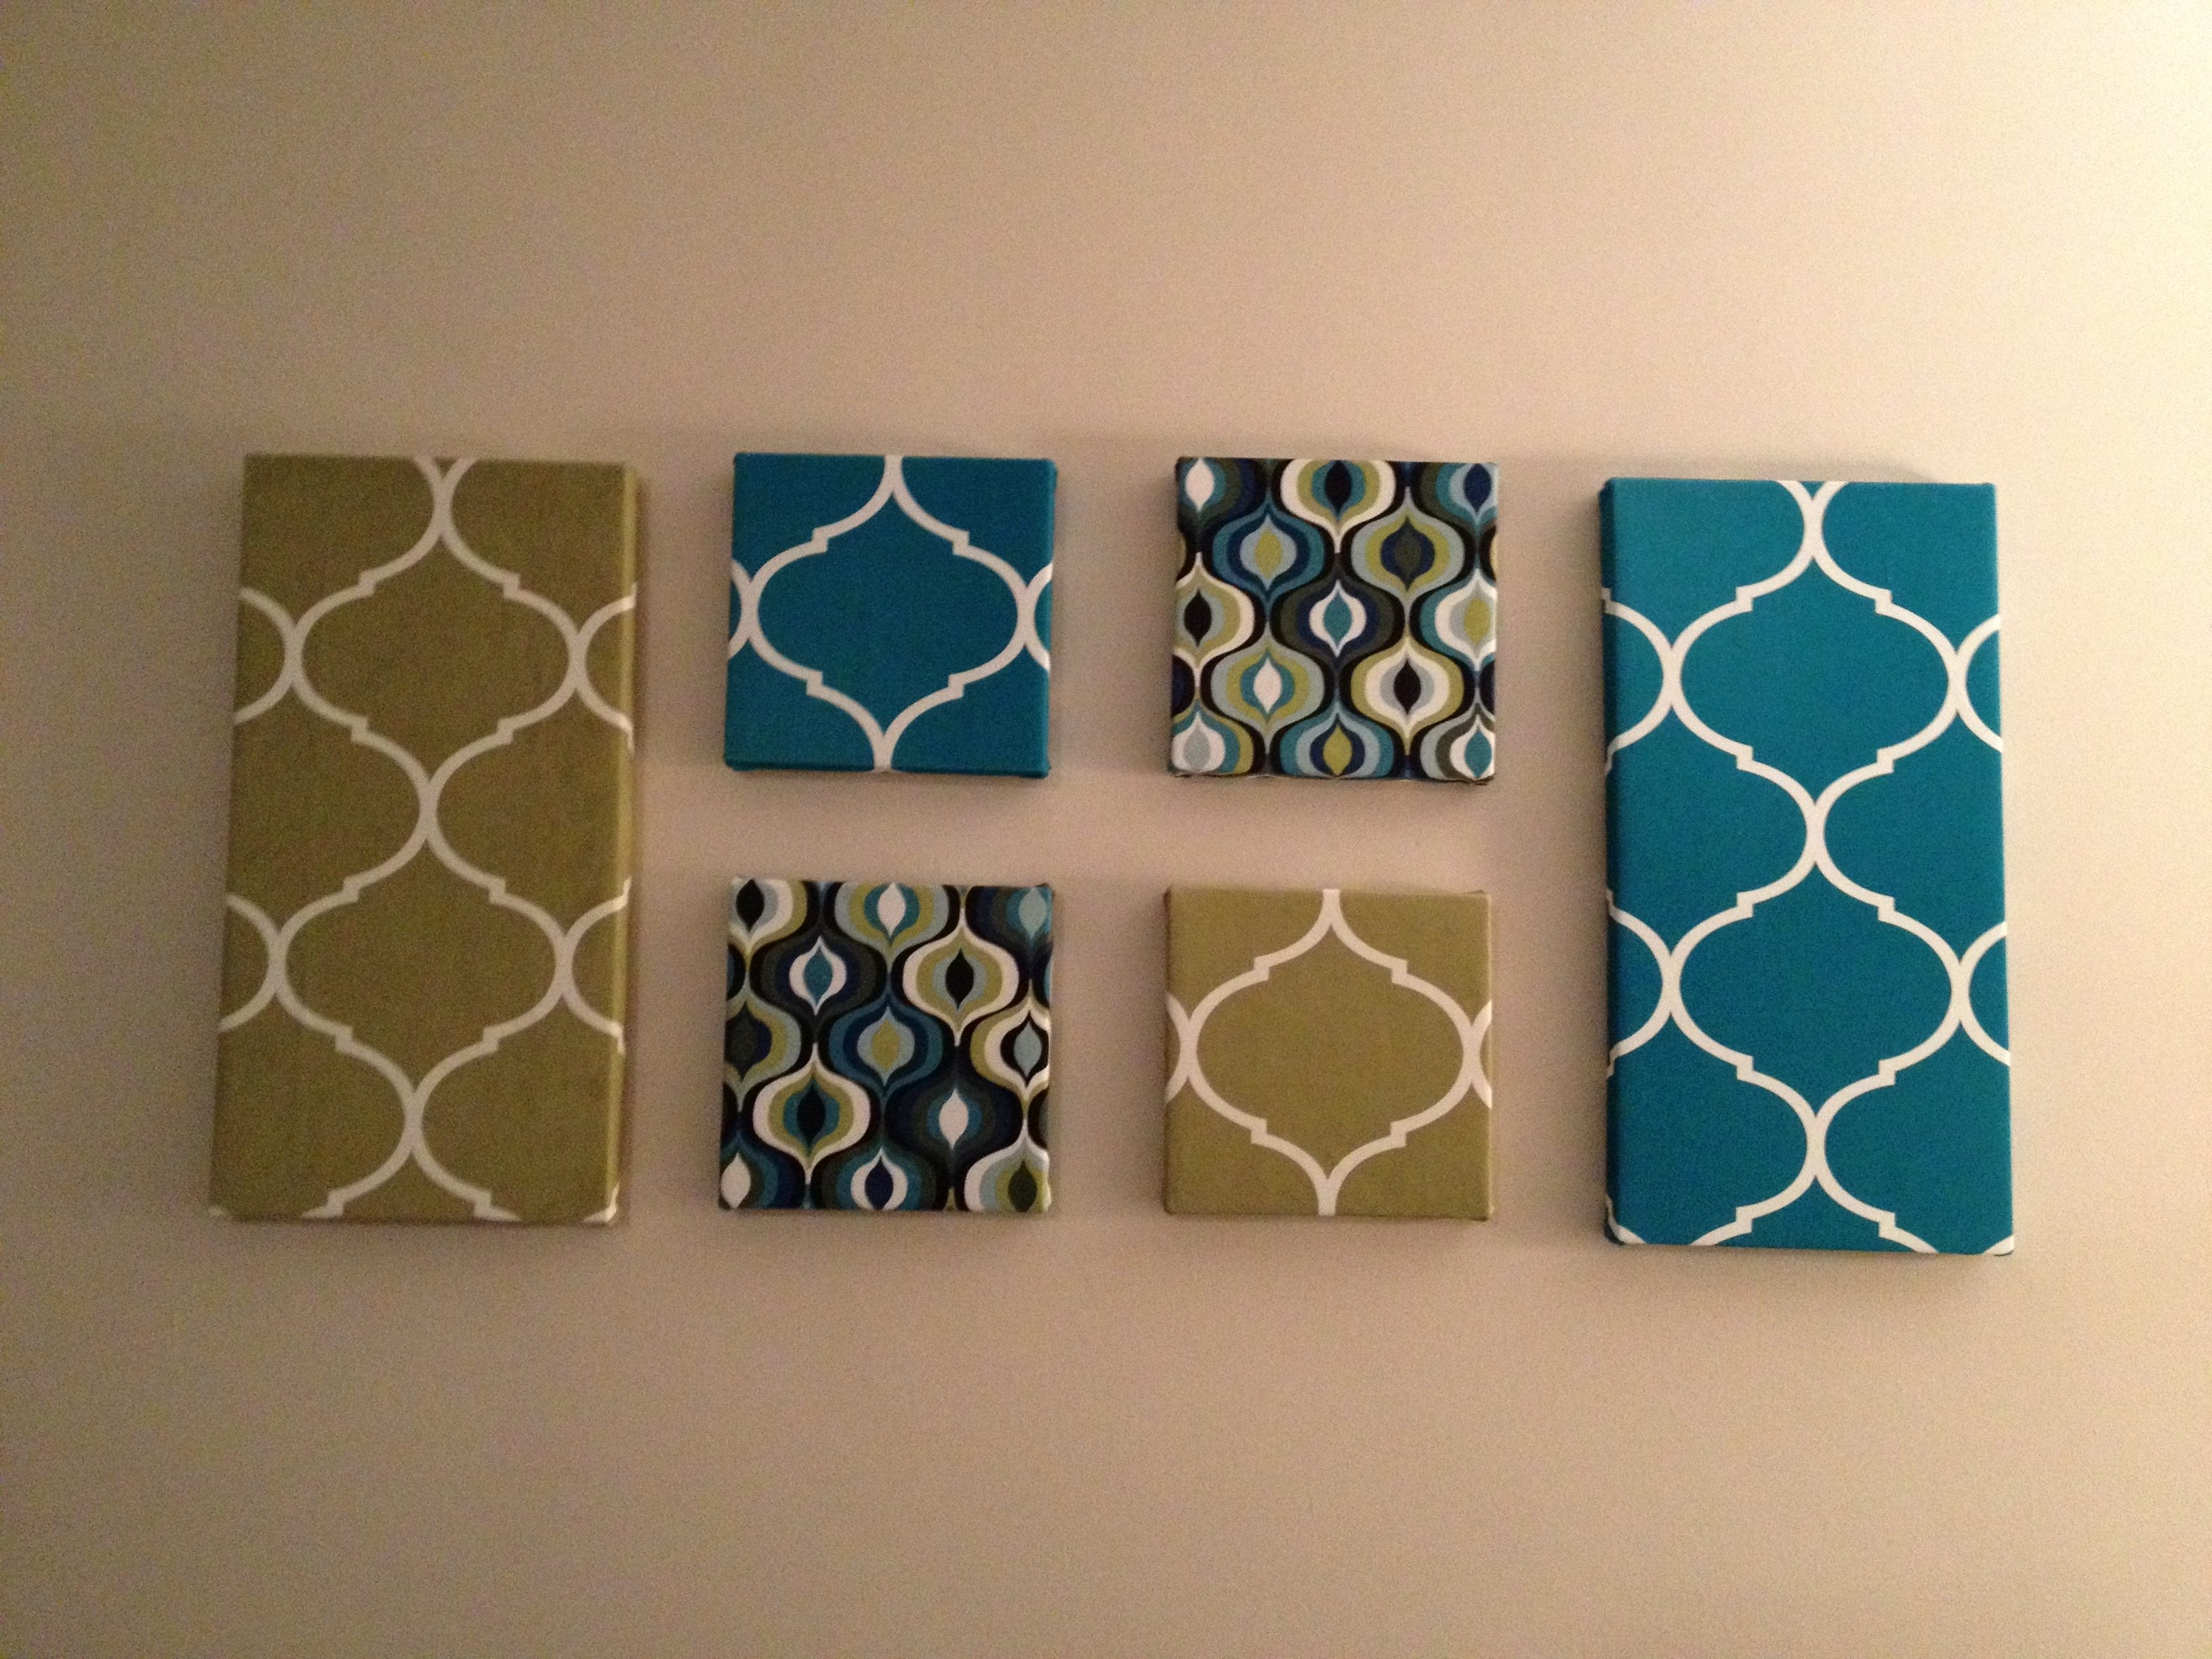 Wall Art: Fabric Covered Canvases | Candy And Her Cupcakes Pertaining To 2018 Canvas Wall Art With Fabric (View 2 of 15)